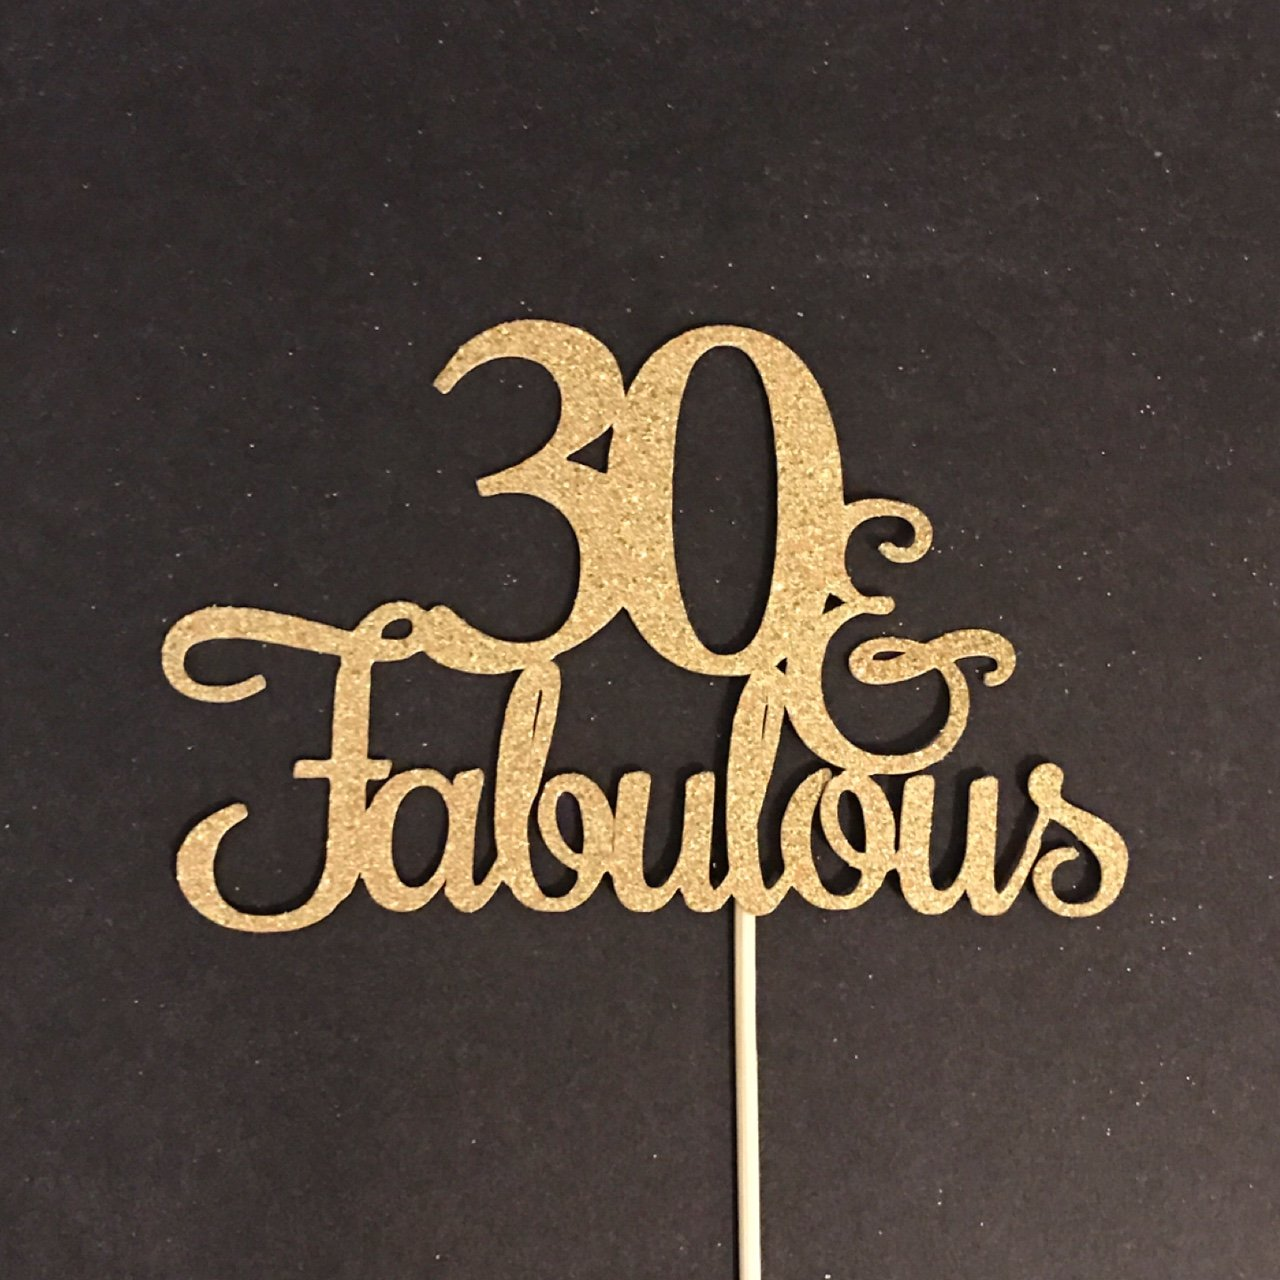 30 and Fabulous Cake Topper, Glitter Cake Topper, Birthday Cake Topper, 30th Birthday Party, Happy 30th, Thirty Birthday and Fabulous, 30th Birthday Cake Topper, Anniversary Cake Topper